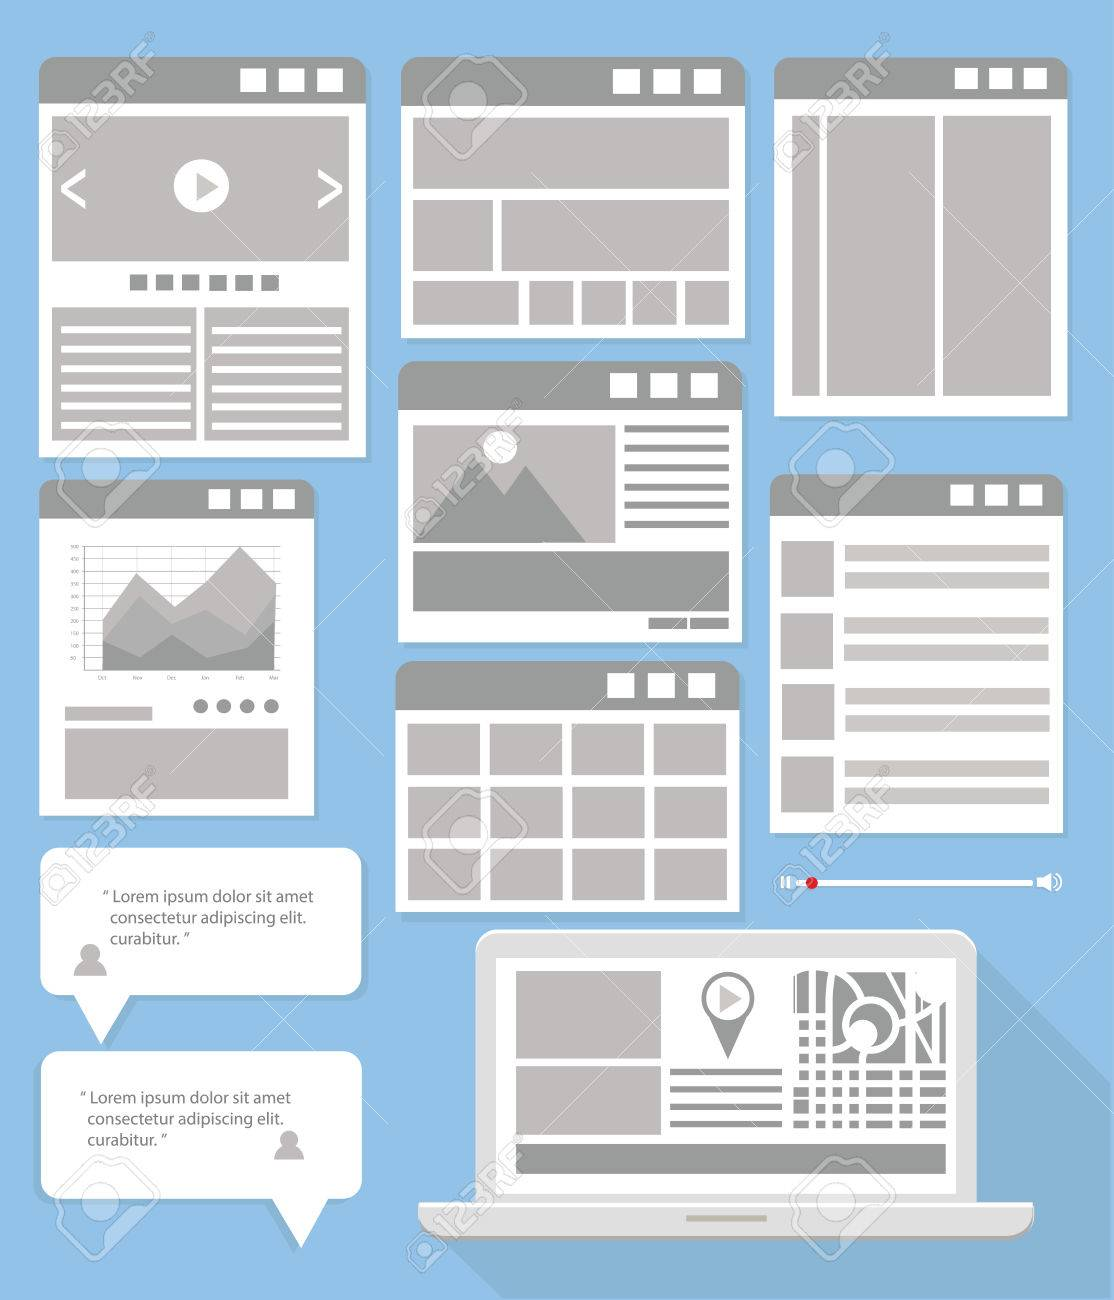 website flowcharts and site mapsfray version stock vector 27680587 - Website Flowcharts